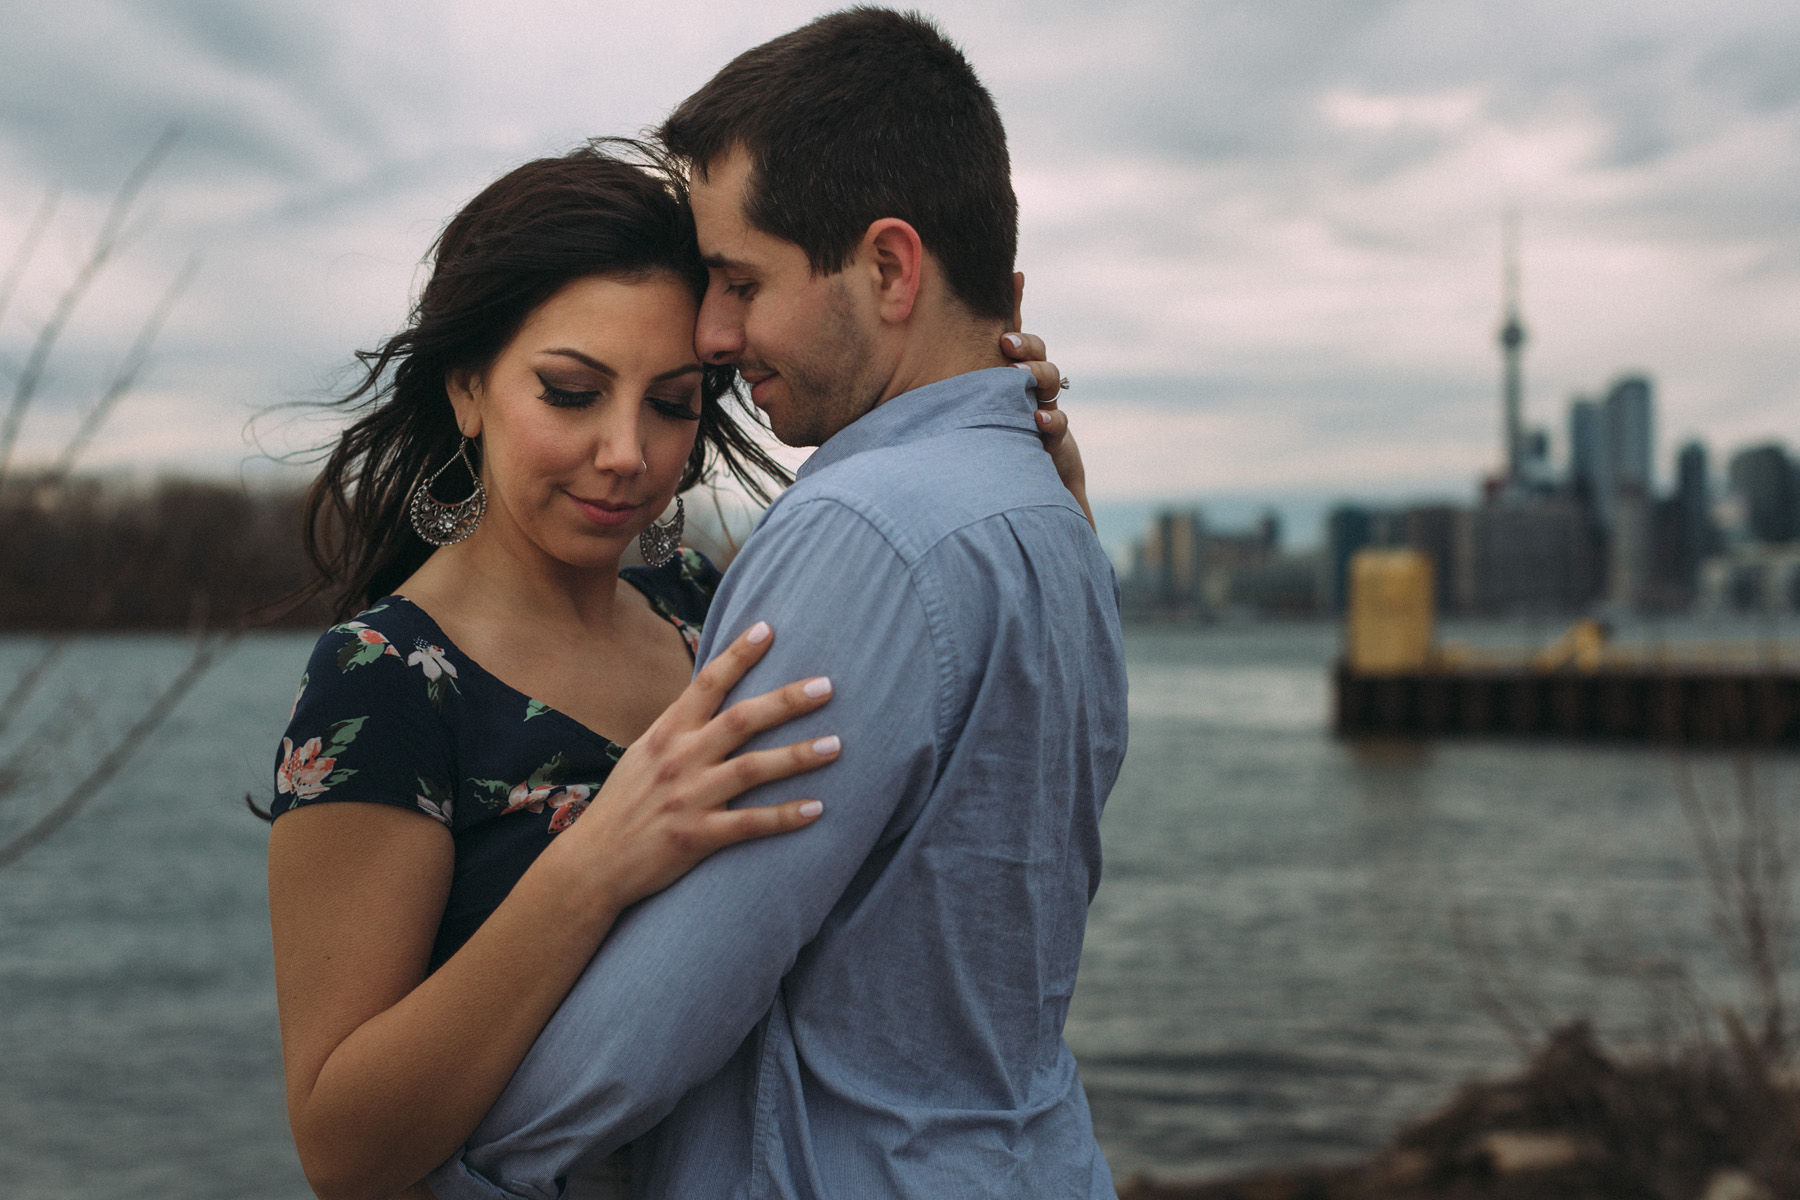 modern-Toronto-engagement-photography-Esplanade-by-Artanis-Collective-wedding-photographer-Sam-Wong_05.jpg